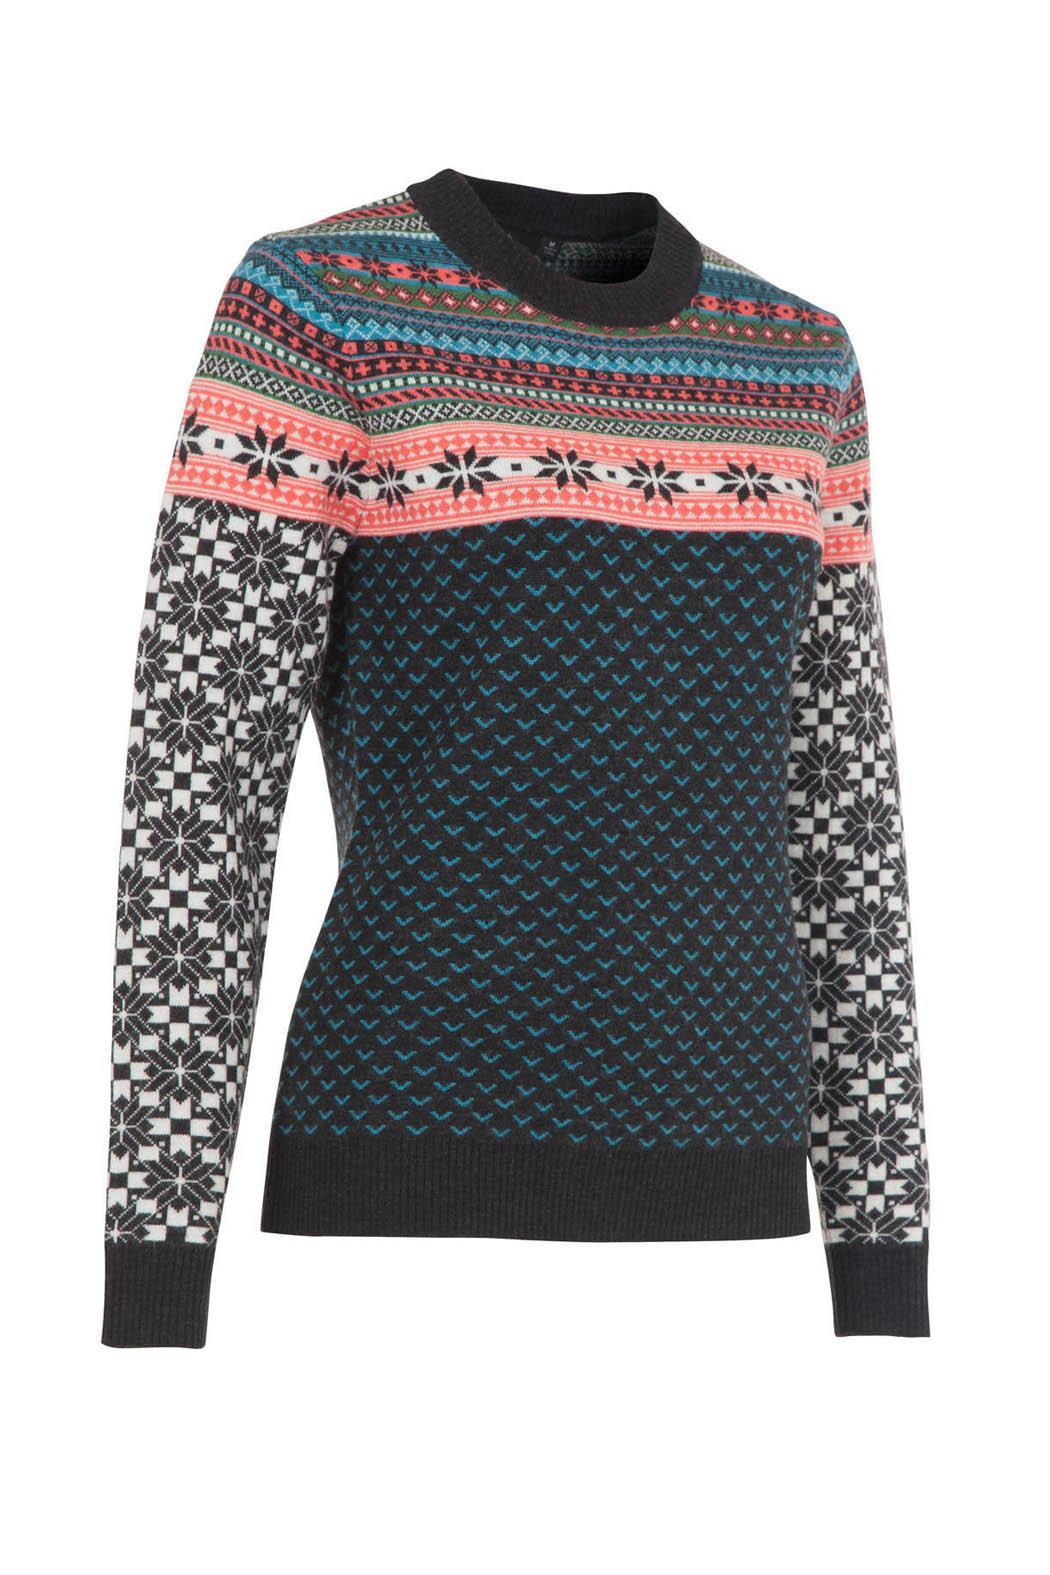 Neve Designs Sadie Crew Neck Sweater - Front Cropped Image